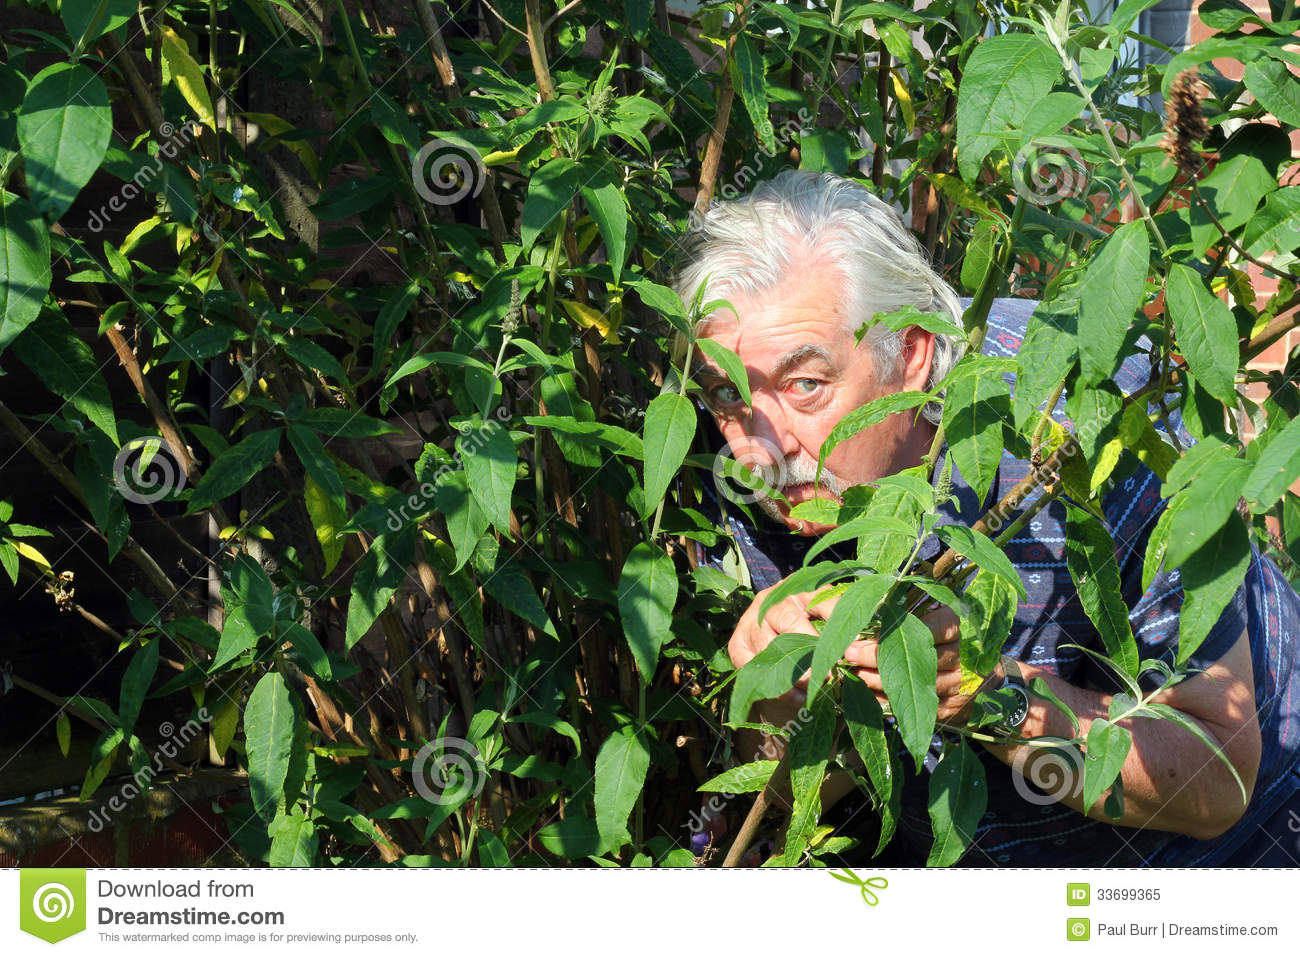 Man Hiding In The Bushes Or Voyeur. Royalty Free Stock Photo - Image ...